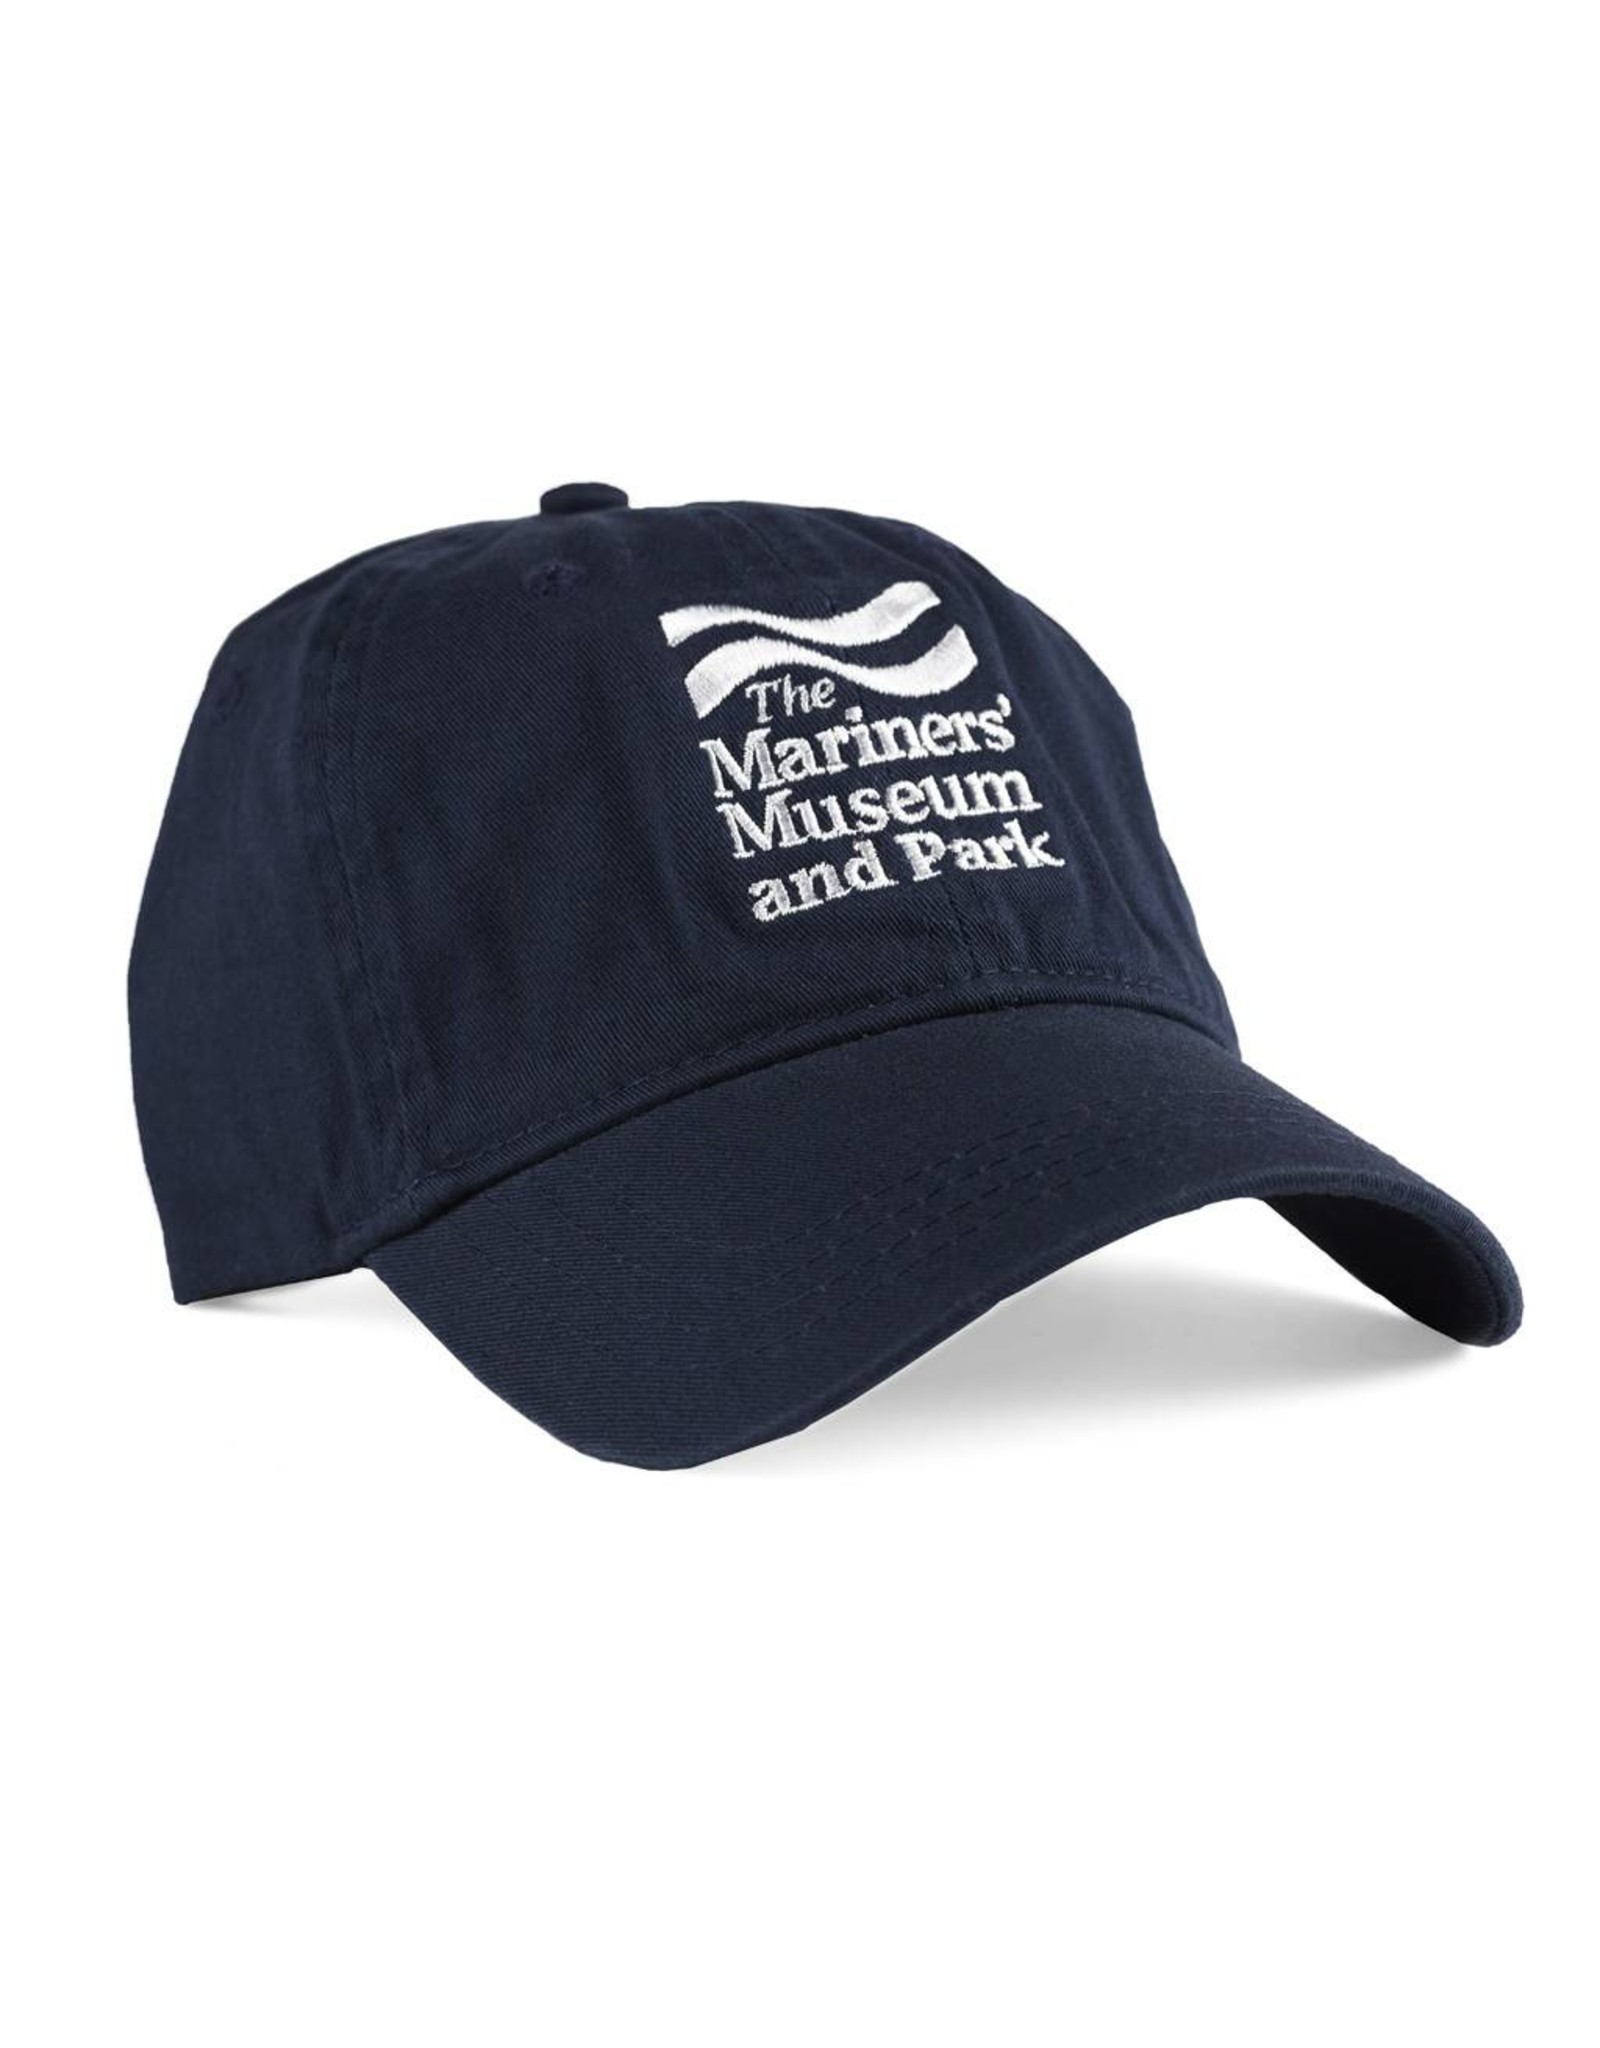 The Mariners' Museum and Park Logo Cap